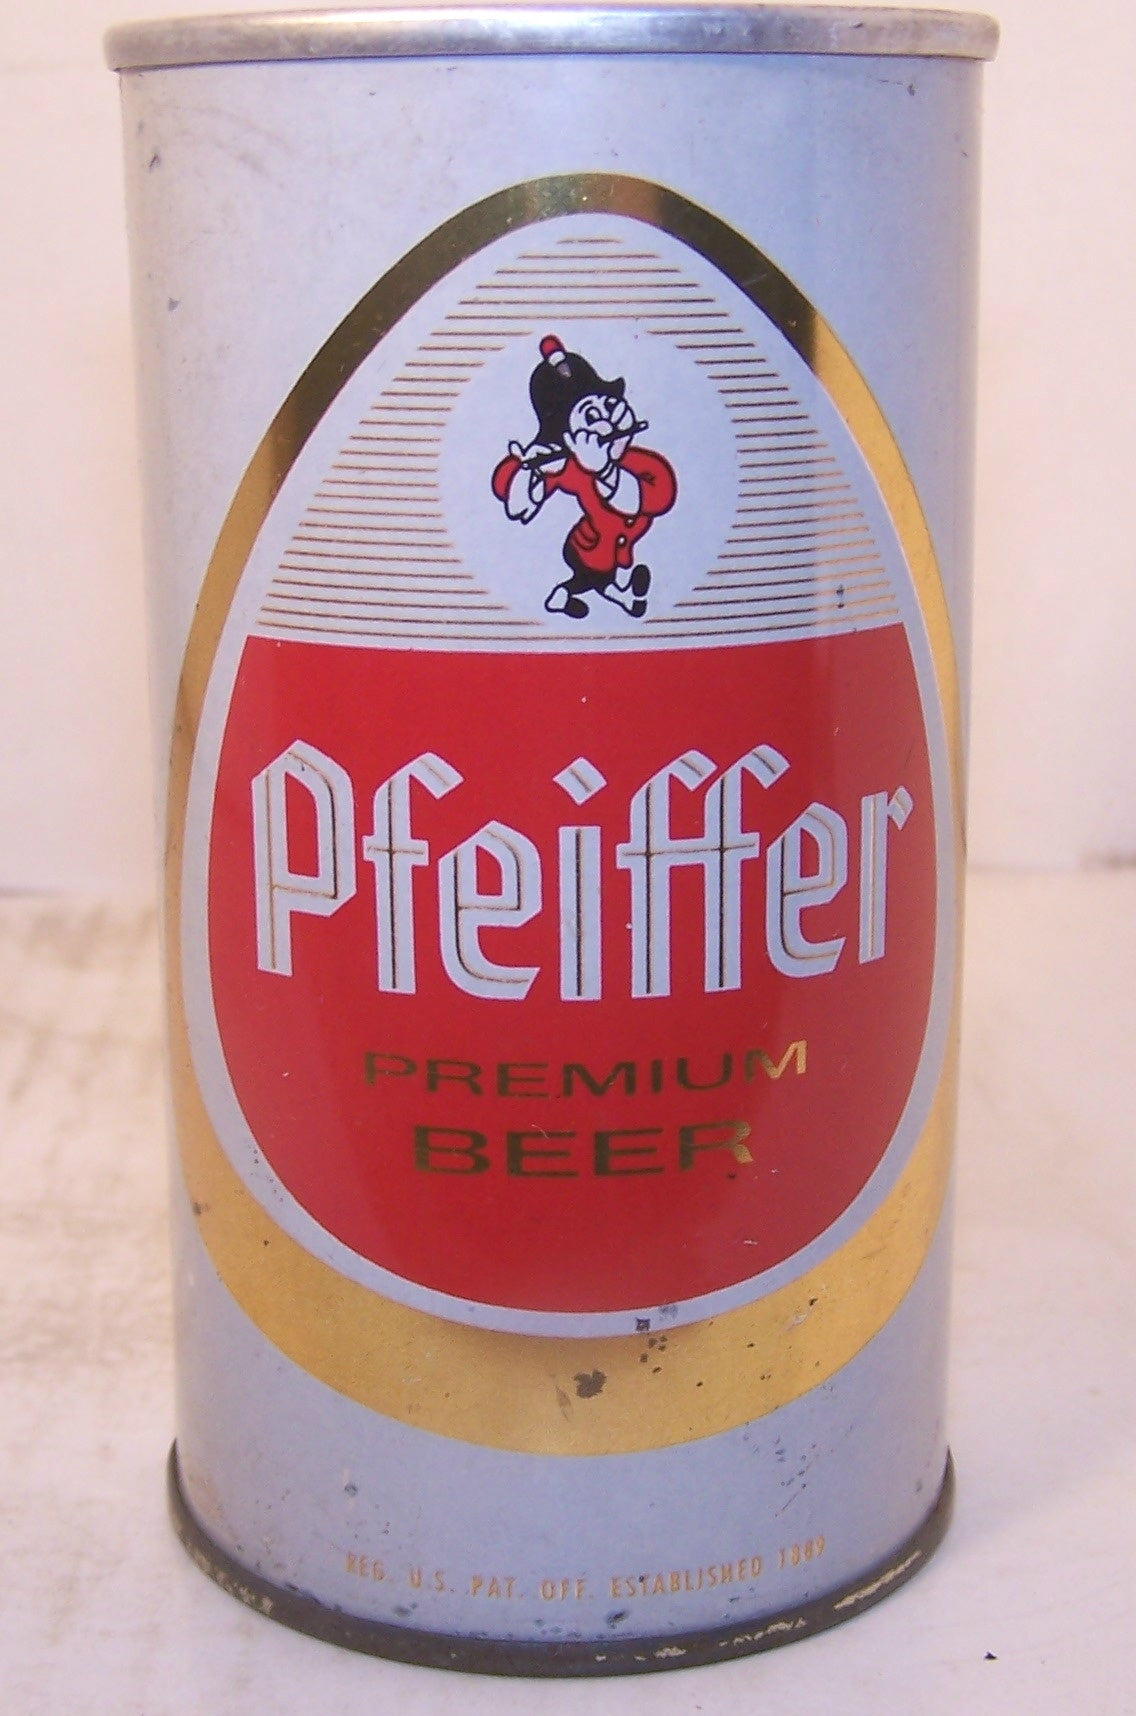 Pfeiffer premium beer, USBC II 108-15, grade 1 Sold on 5/11/15